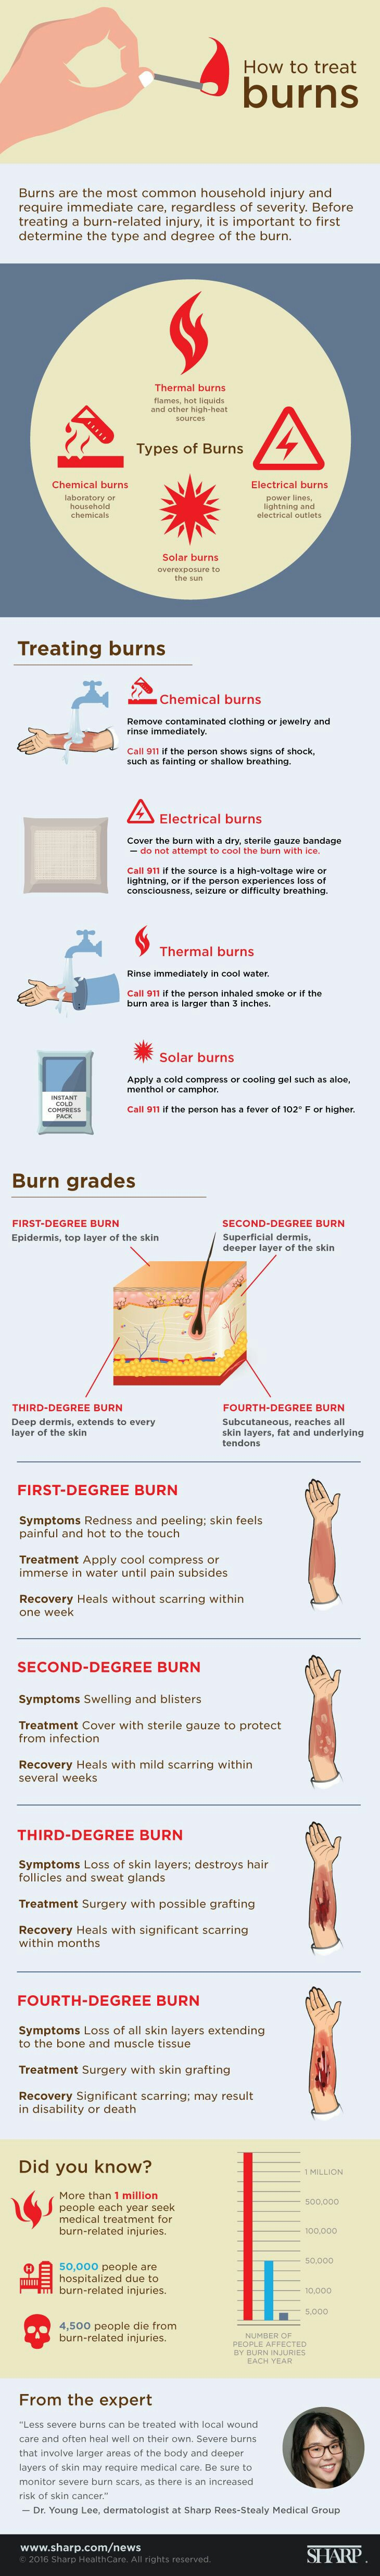 FIRST AID: How To Treat Burns